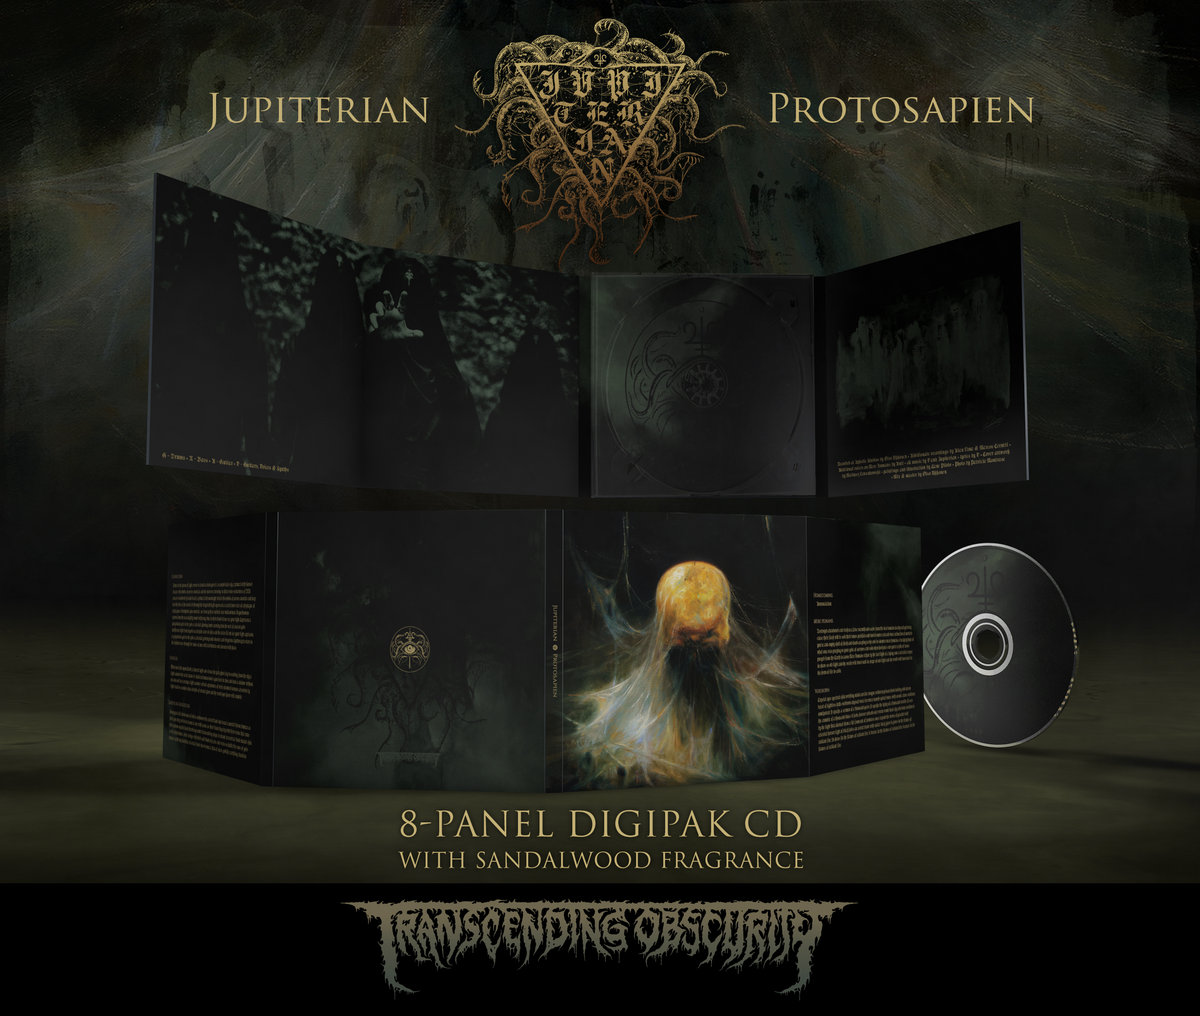 JUPITERIAN - Protosapien 8-Panel Digipak CD with Metallic Effect and Sandalwood Fragrance